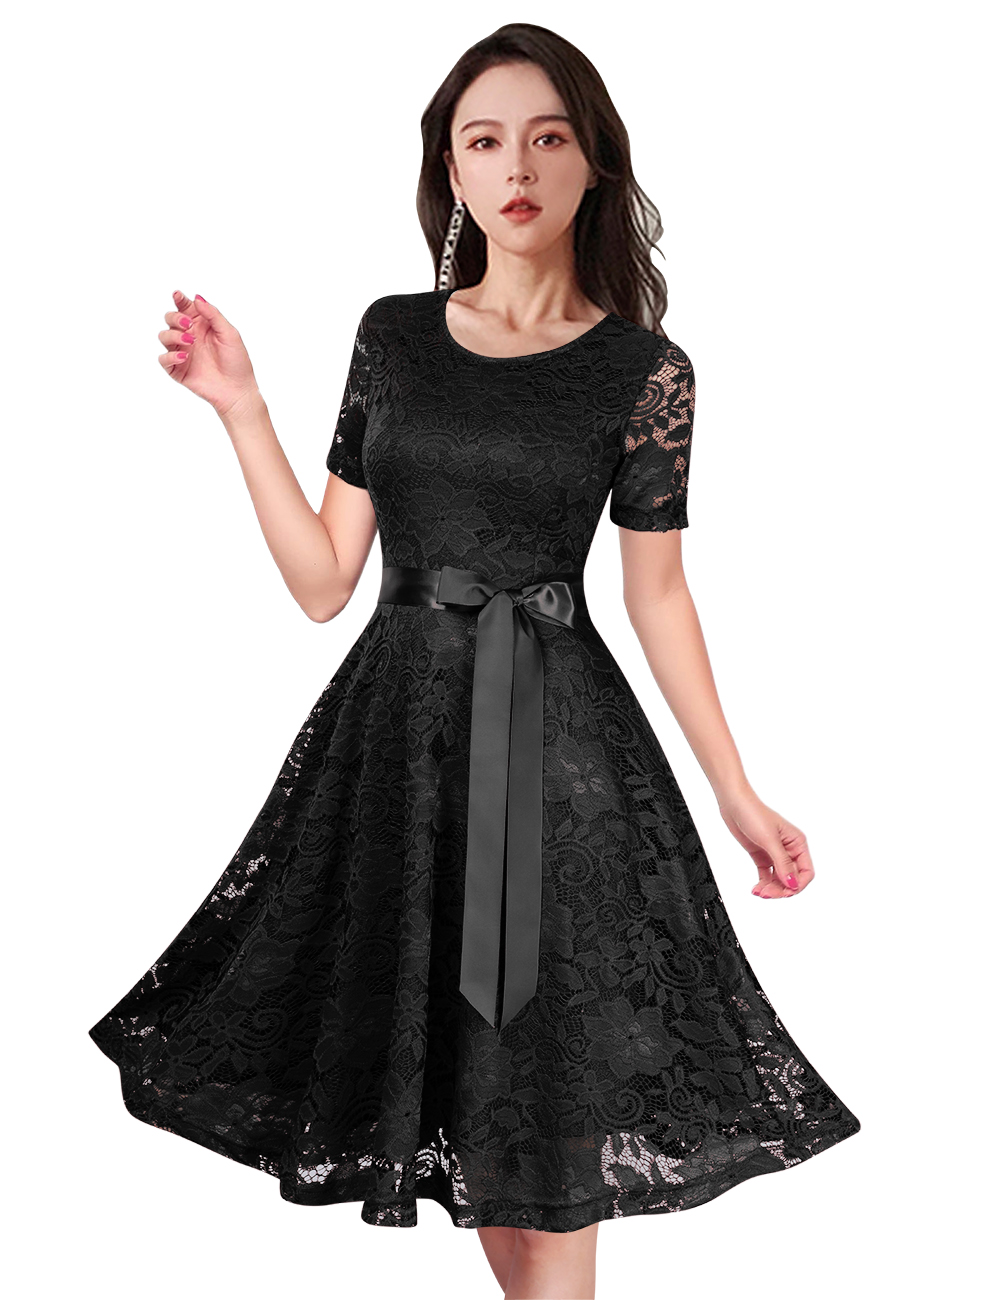 GloryStar Women's Short Sleeve Solid A-Line Bowknot Cocktail Party Lace Midi Dress